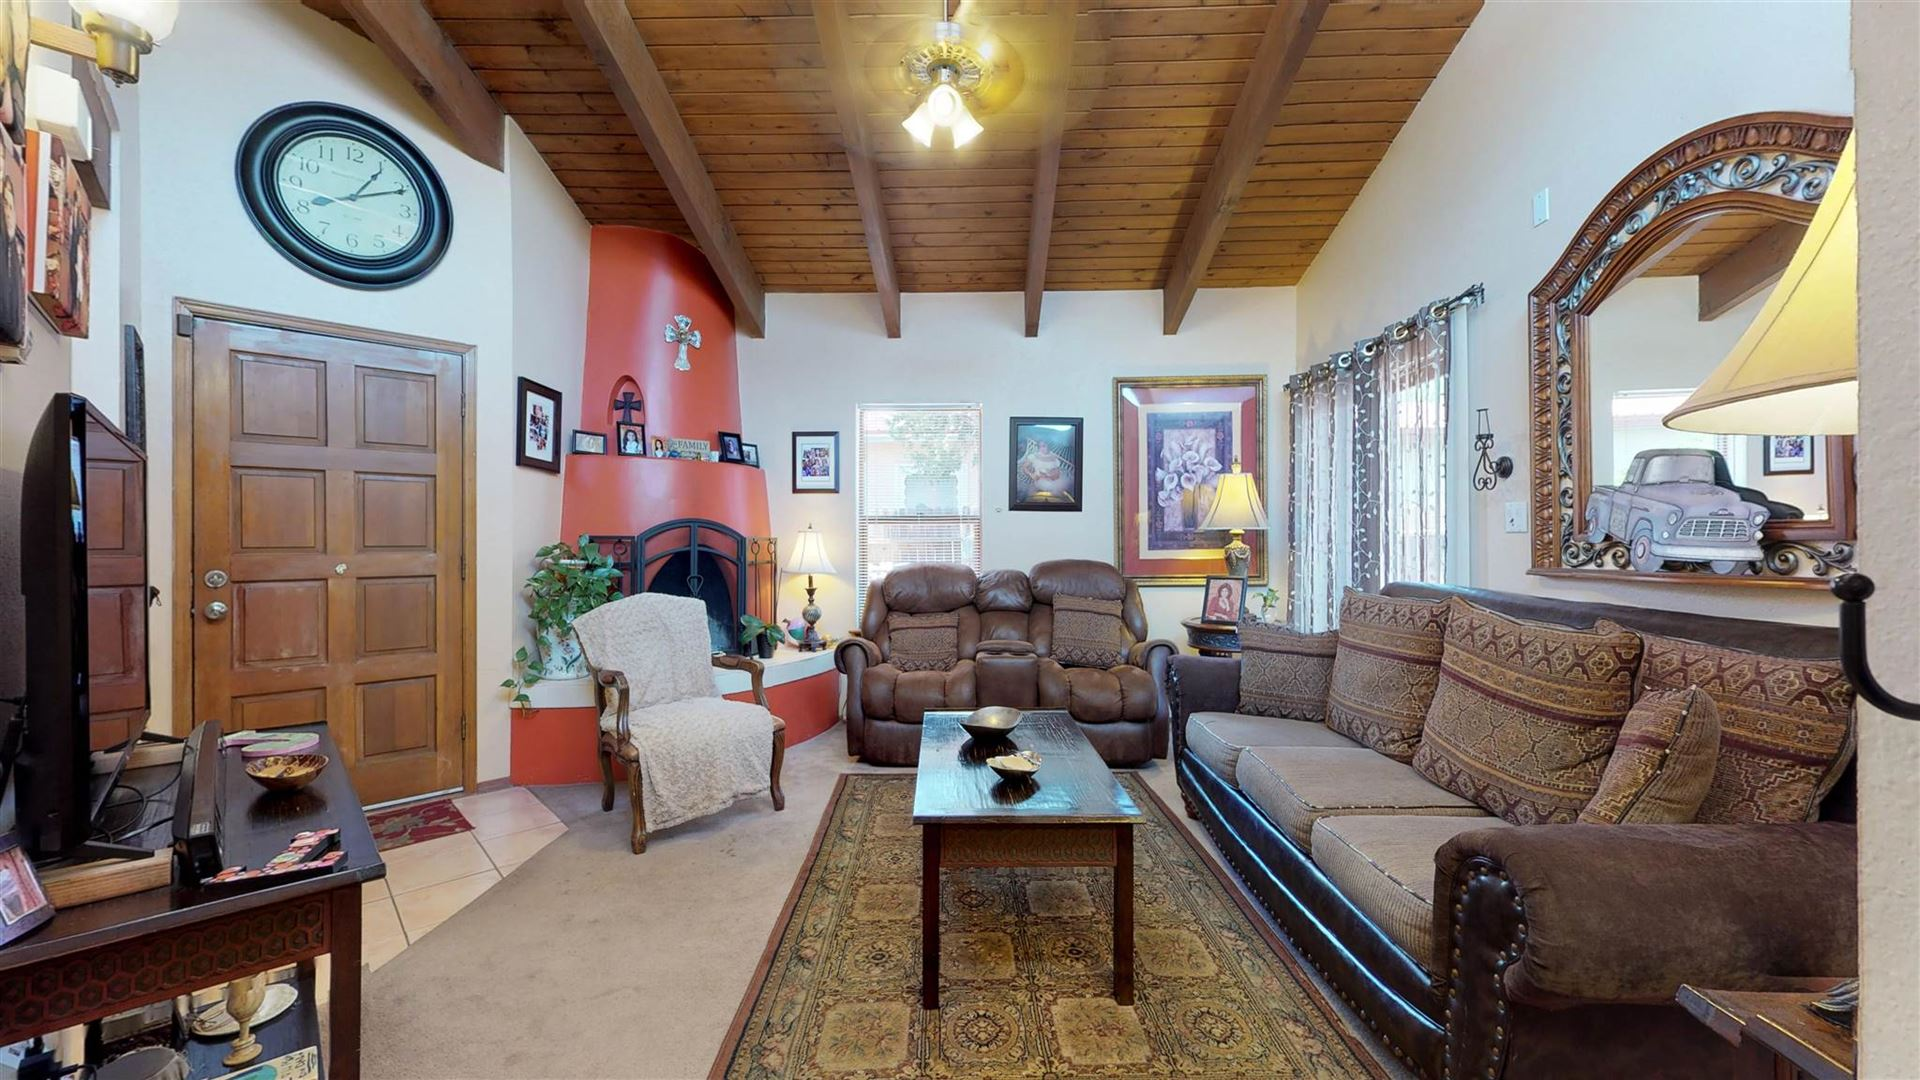 Photo for 2987 Viaje Pavo Real, Santa Fe, NM 87505 (MLS # 201902588)